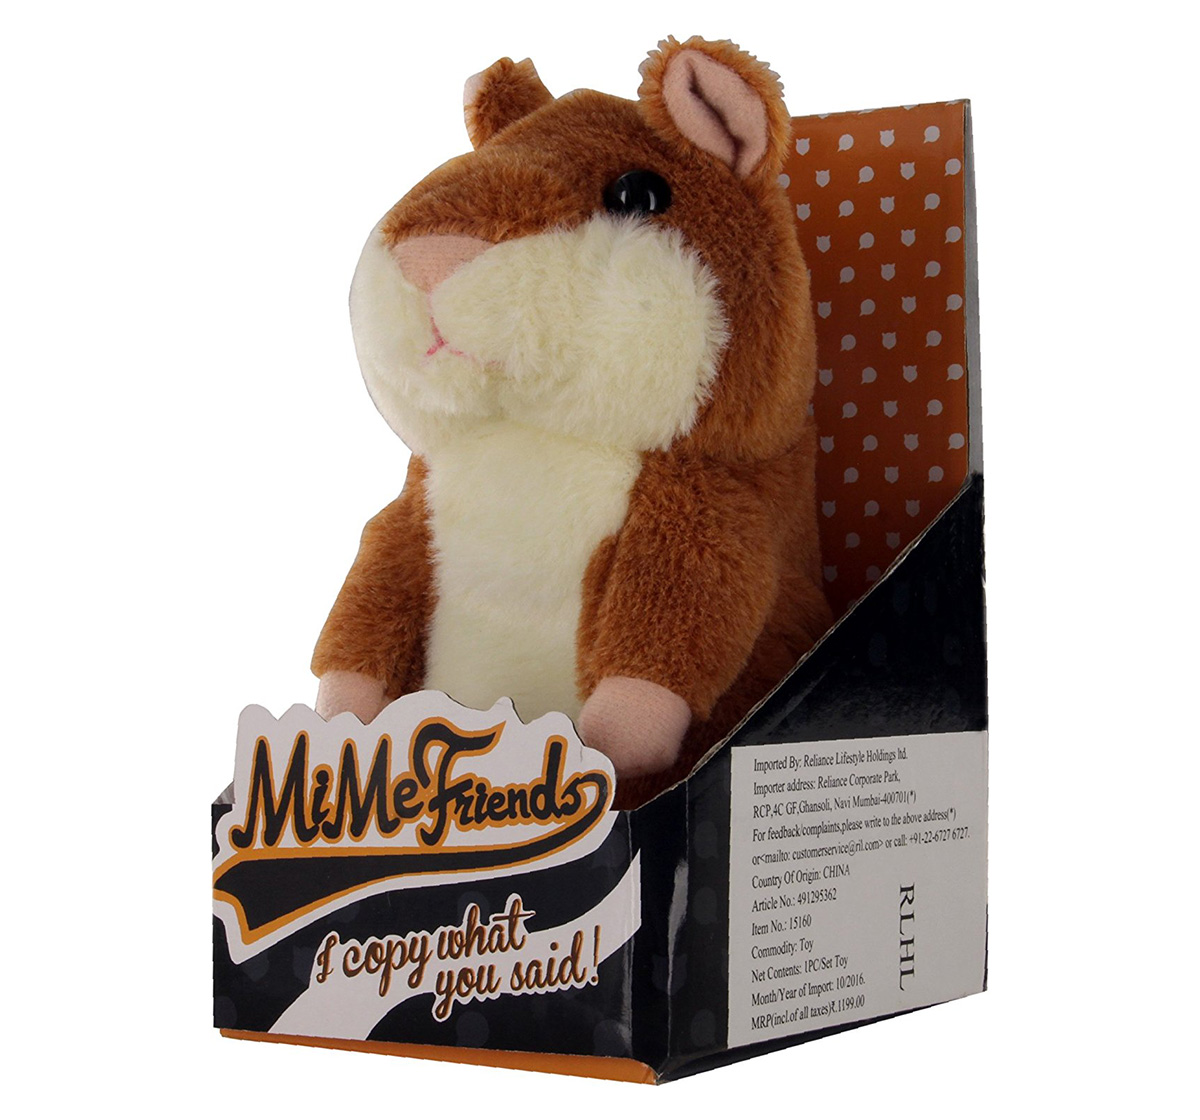 Woody | Woody O'Time Mime Friends Mice Soft Toy (Brown)